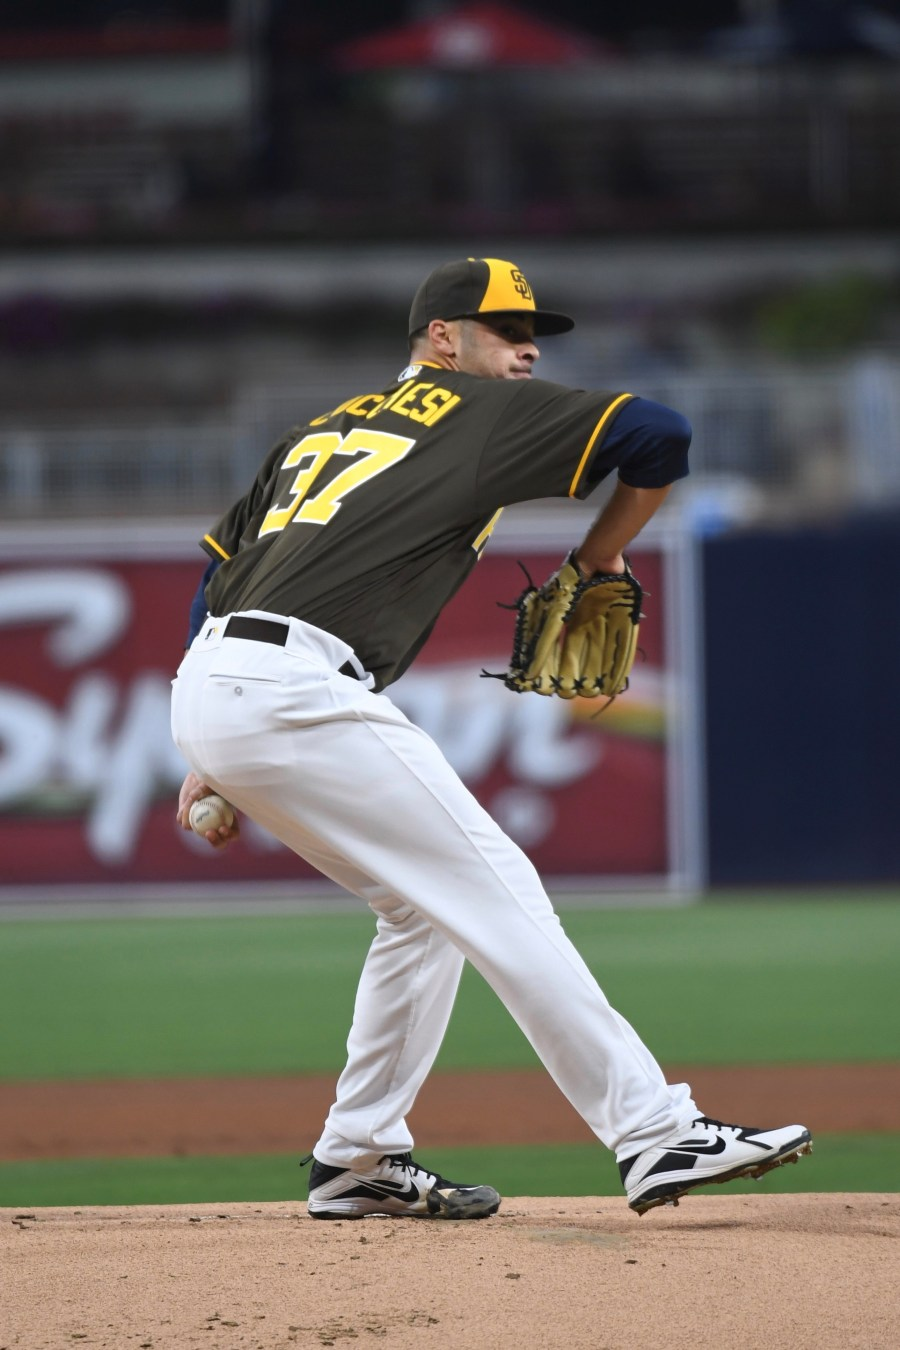 San Diego Padres pitcher Joey Lucchesi